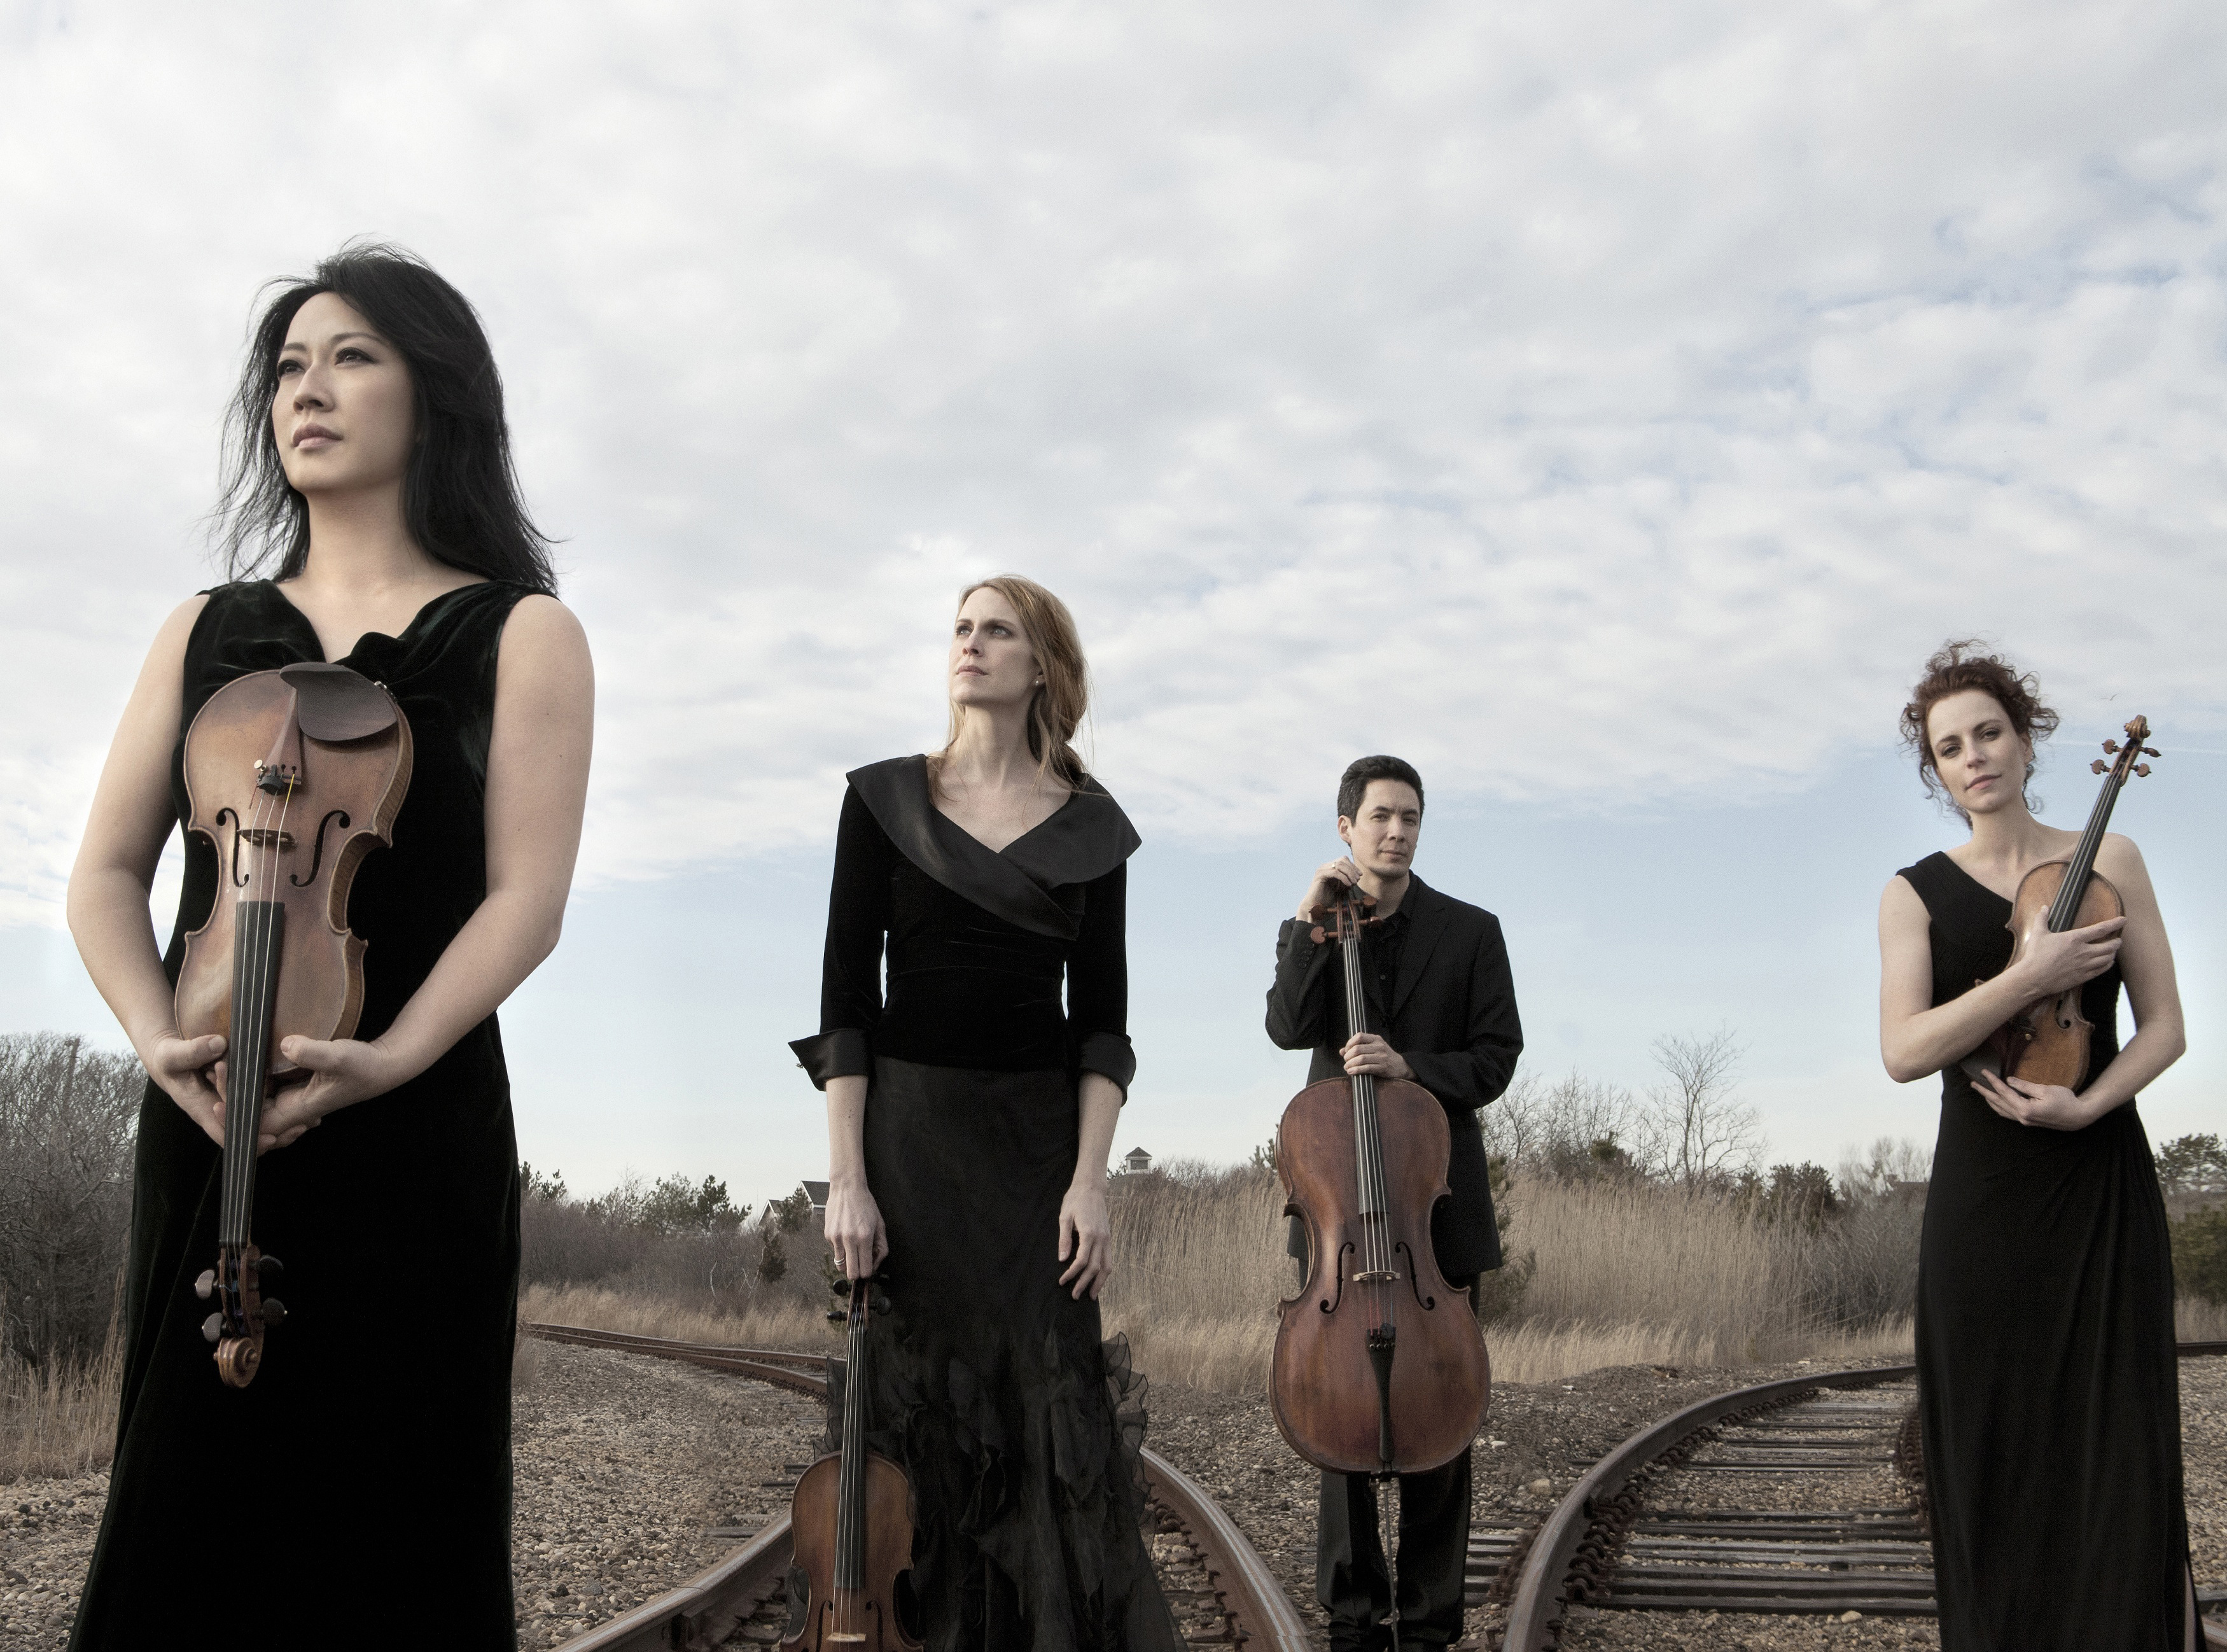 The Daedalus Quartet will perform the the complete Beethoven Quartets at Penn.